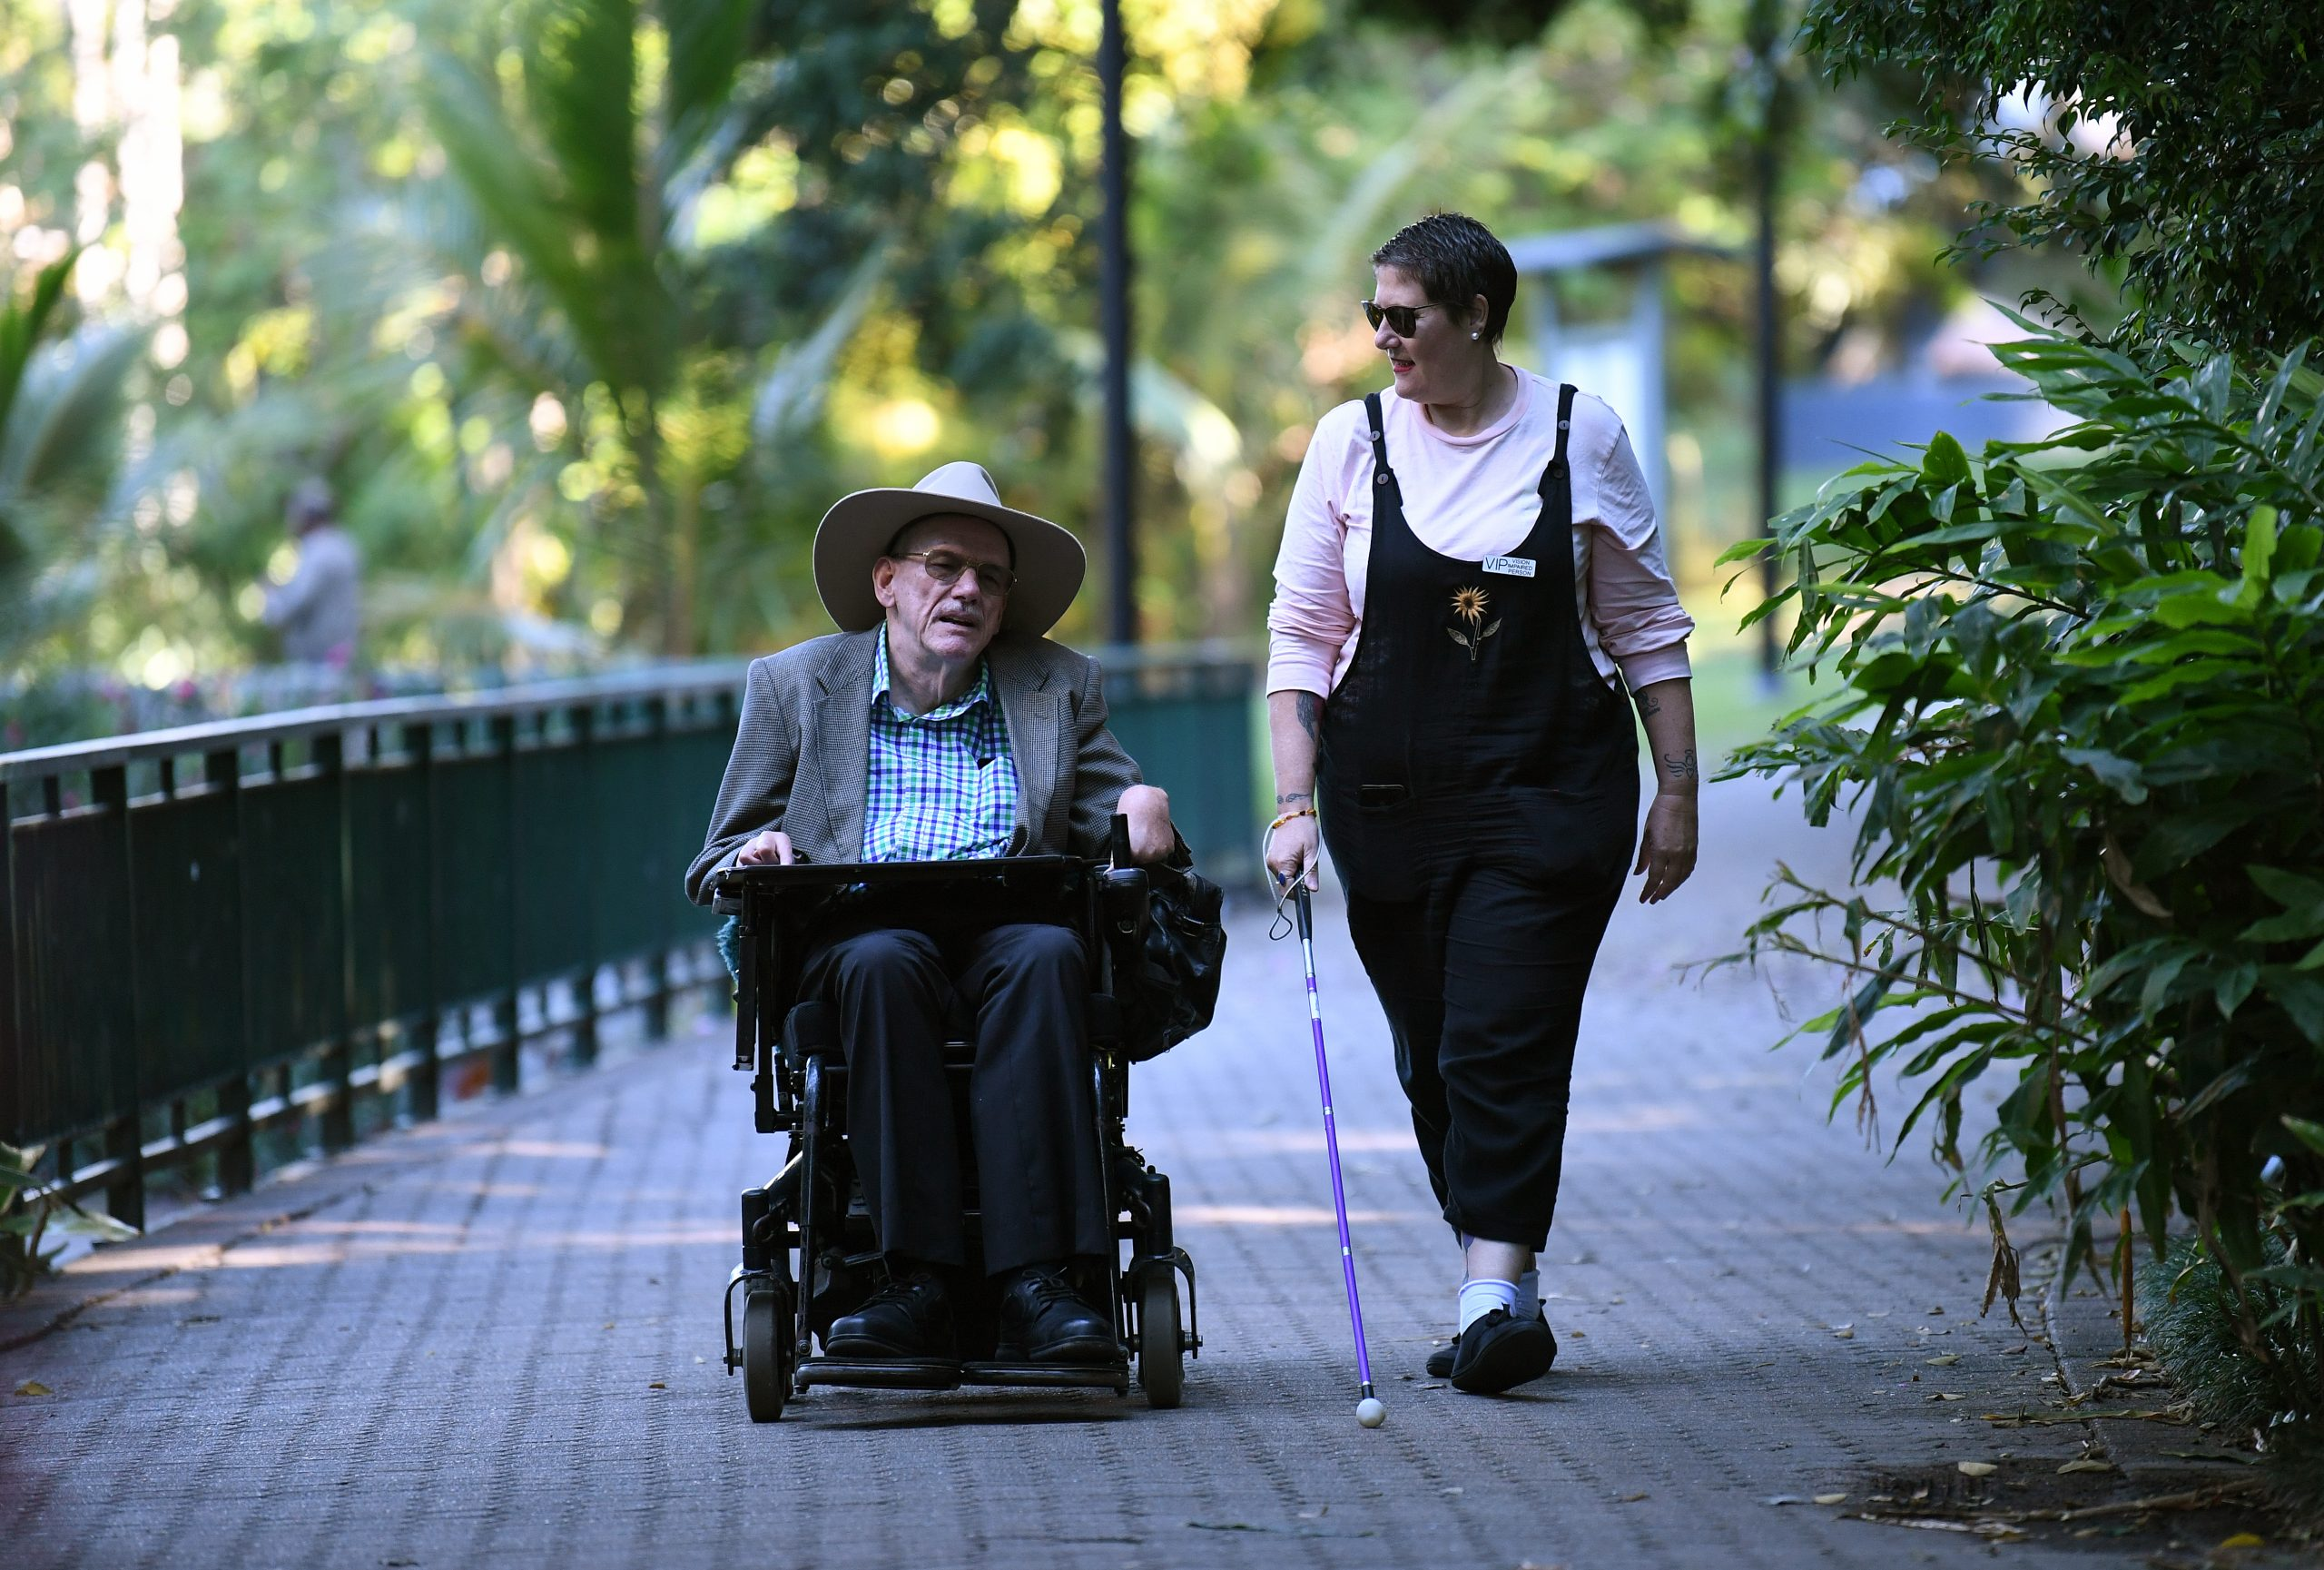 Outdoors, a man in a wheelchair chats with a blind lady walking next to him.